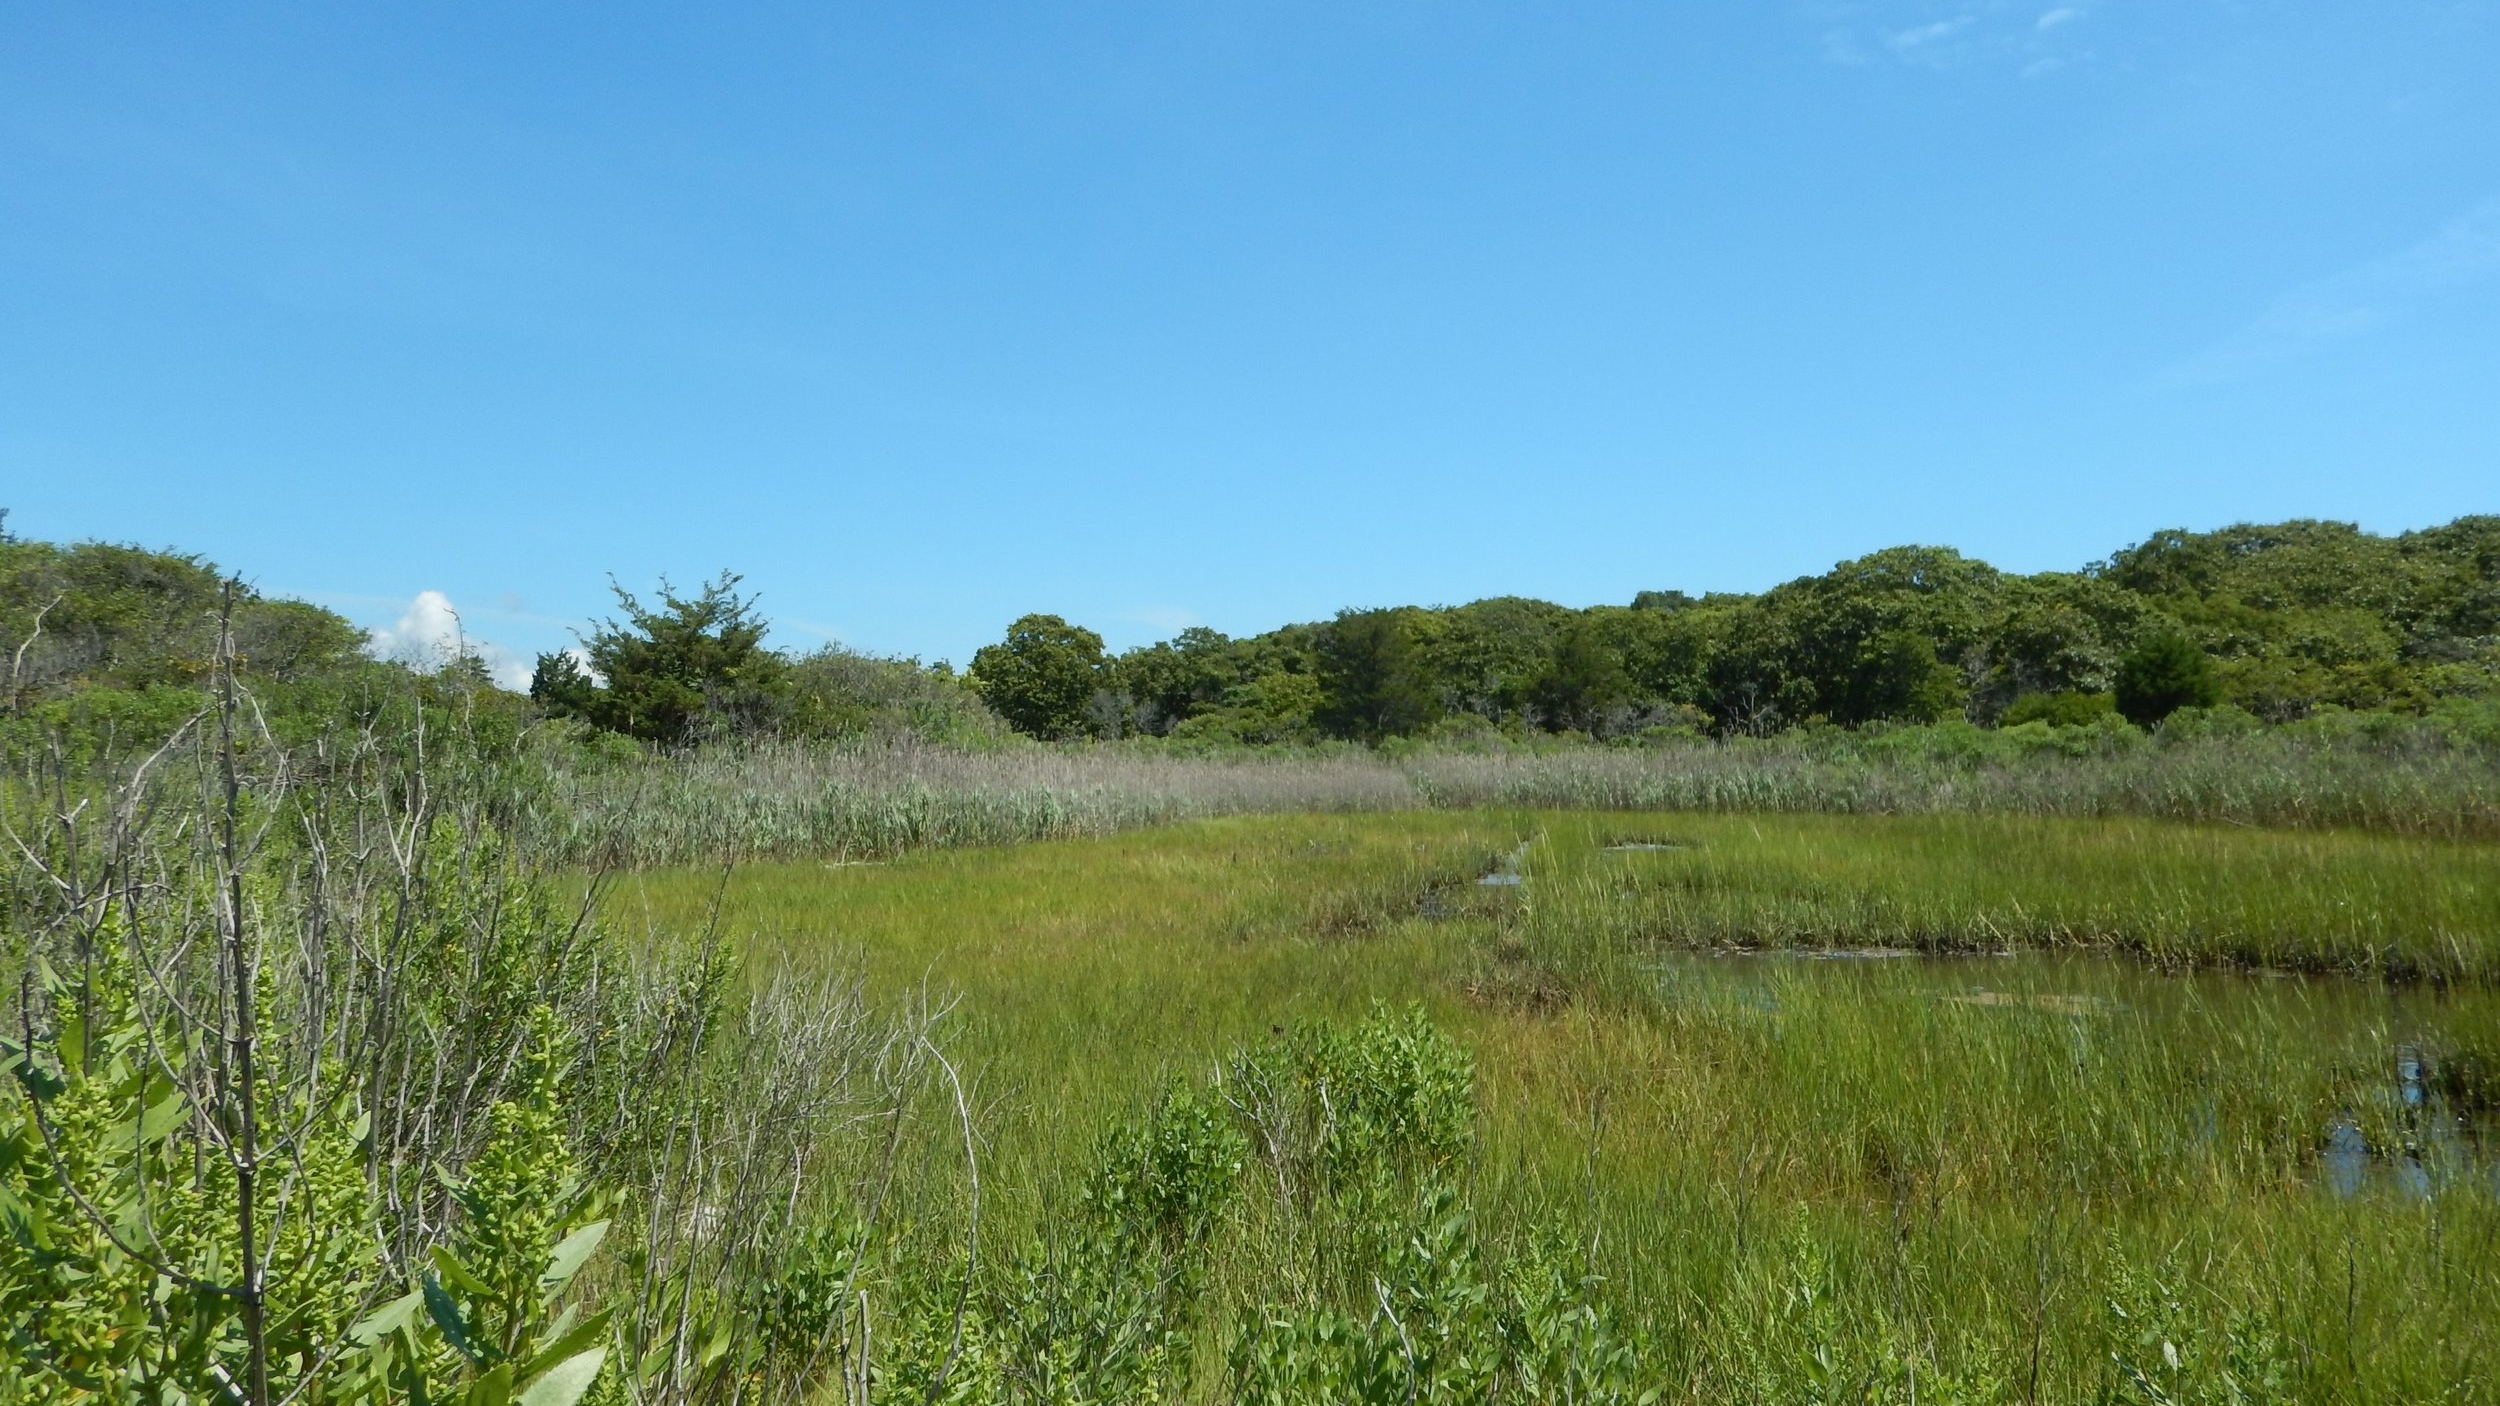 One of the salt marshes in the project area.